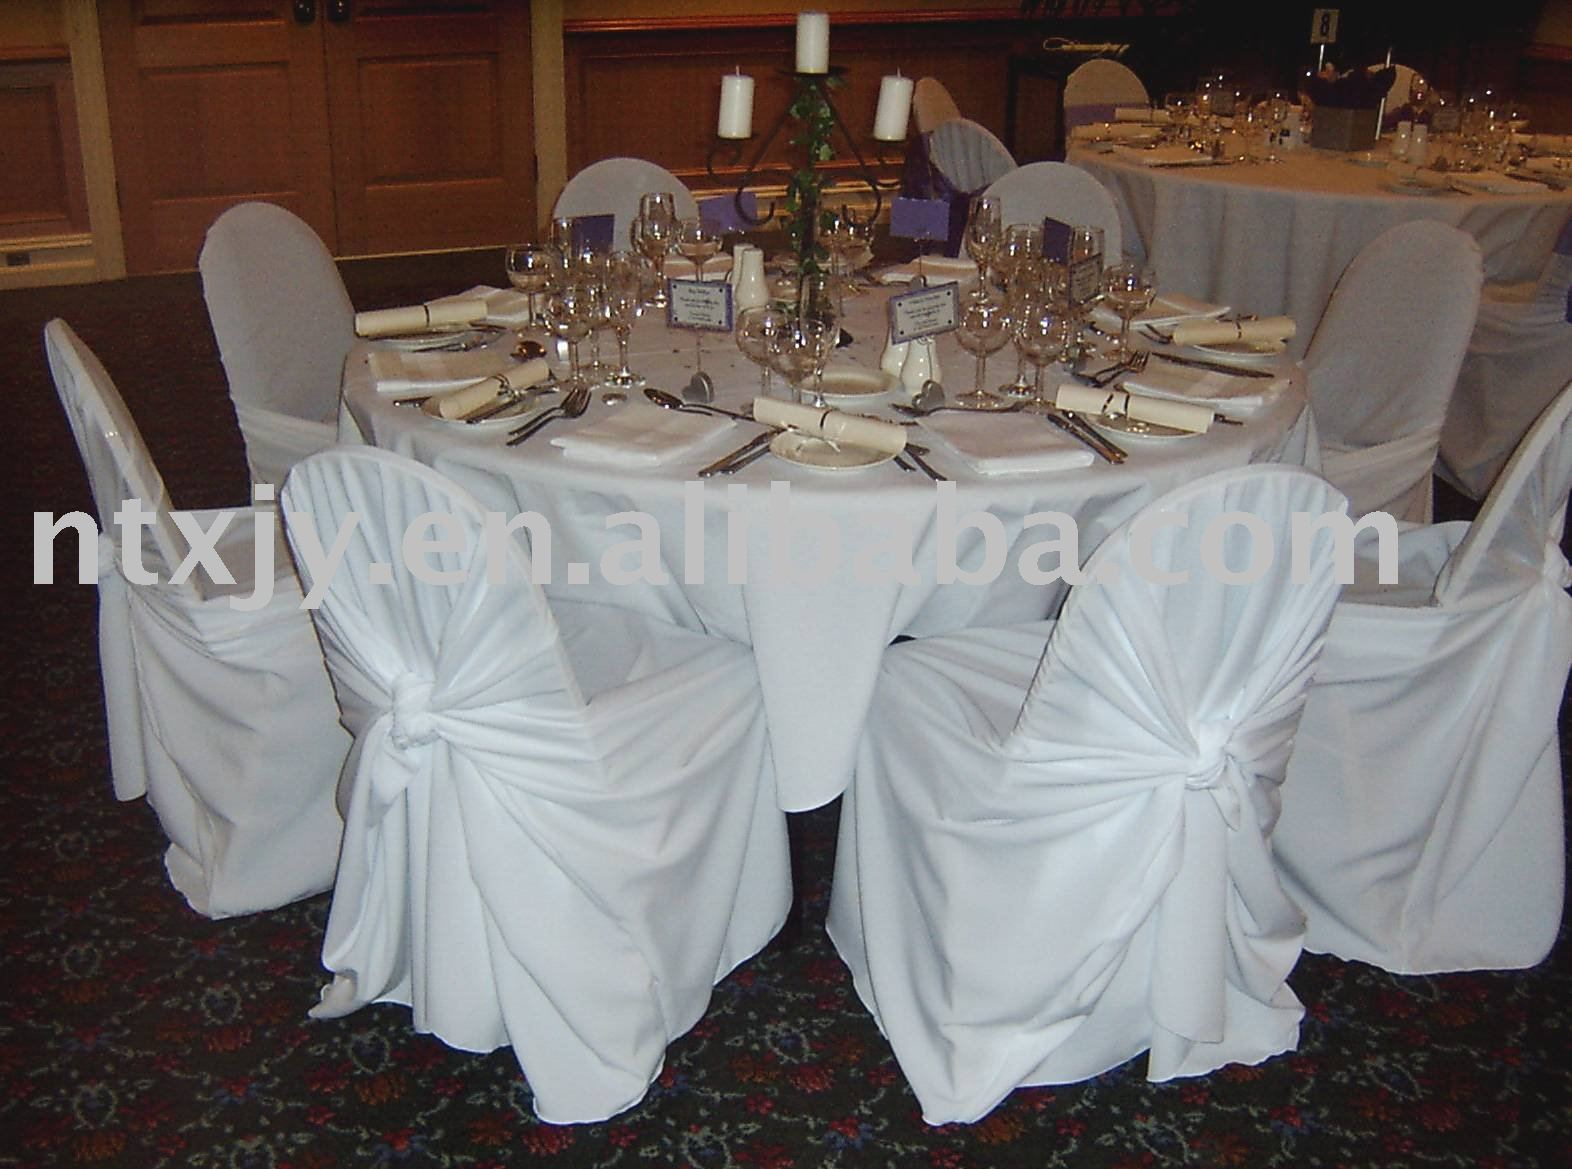 Chair Covers Wedding Buy Barcelona Replica Uk Cover In From Home And Garden On